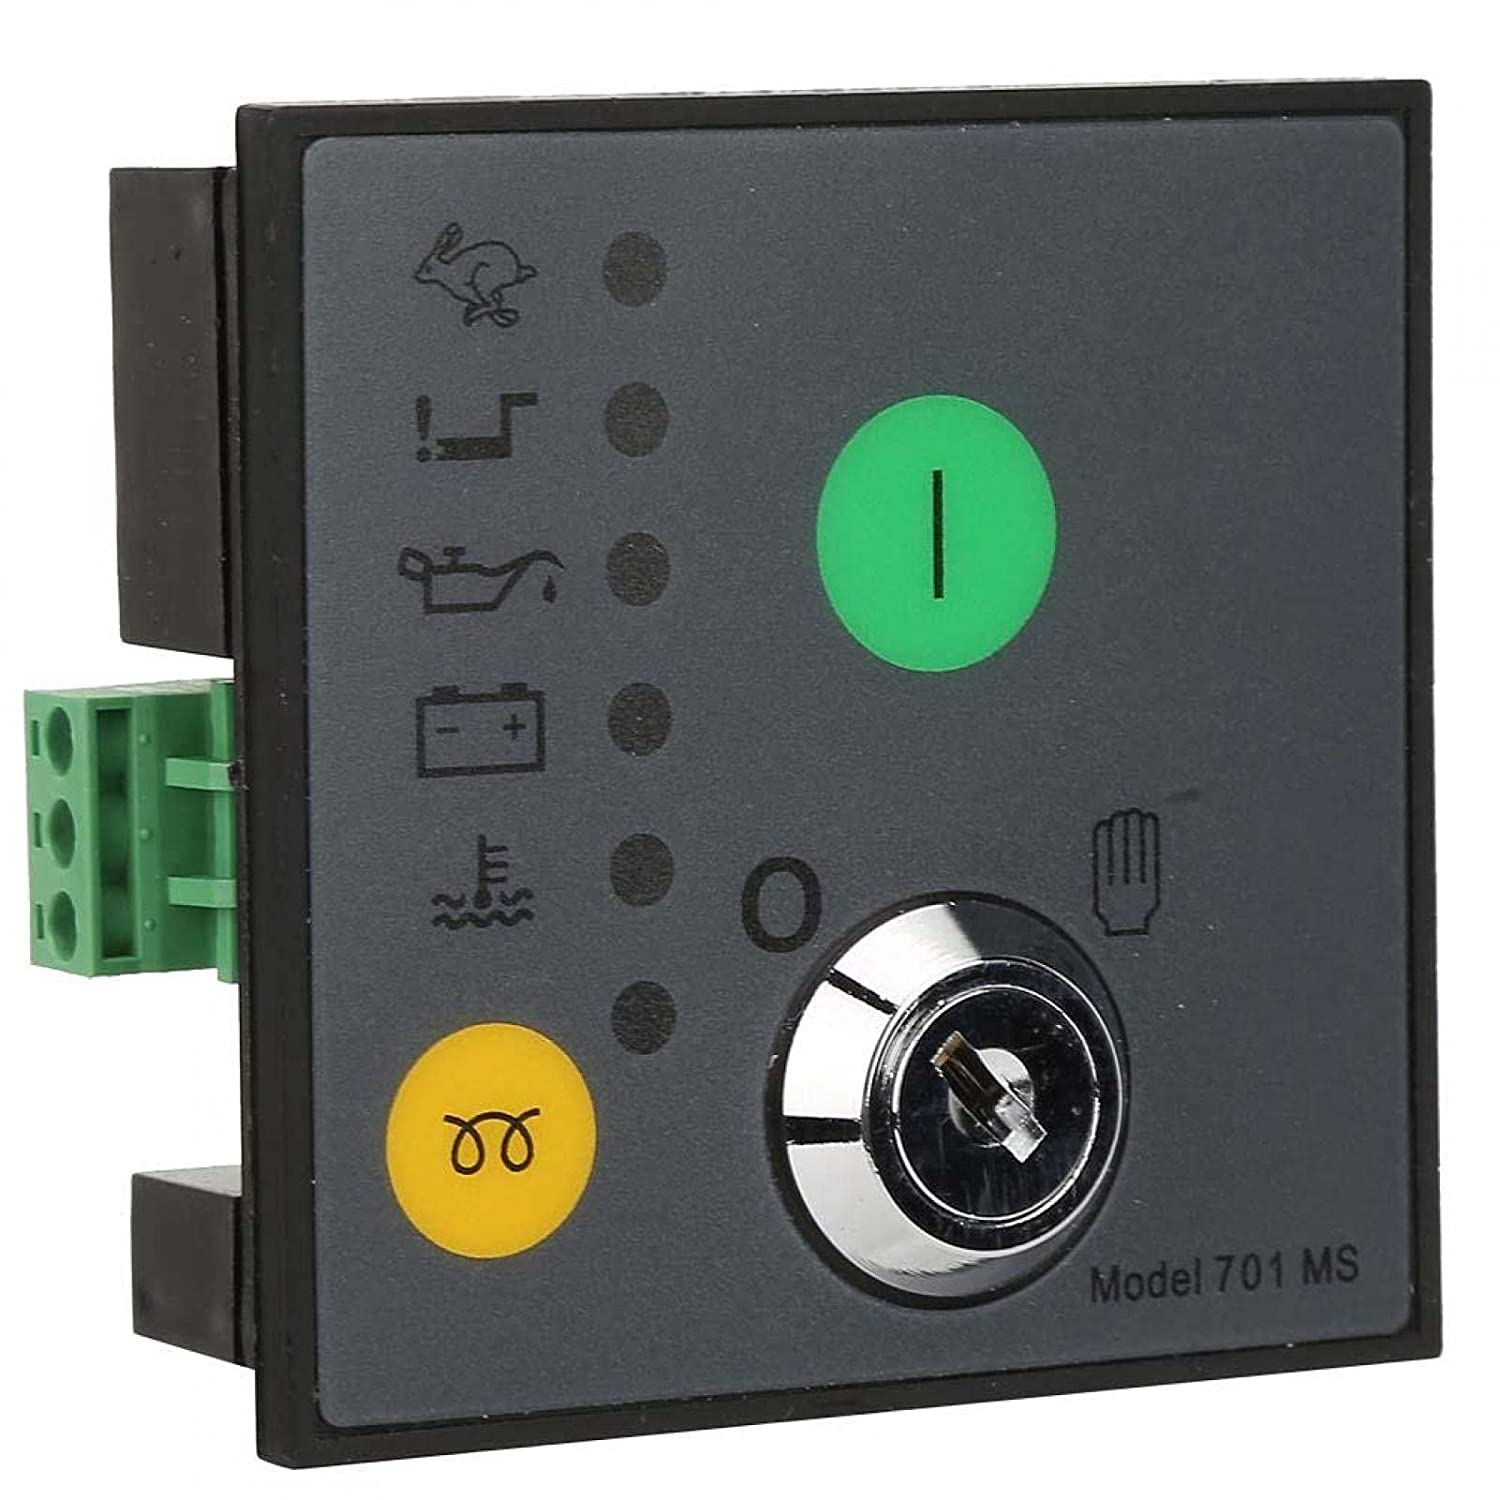 Max 54% OFF Generator Controller Max 60% OFF Solid Structure Low Mod Start Manual Noise